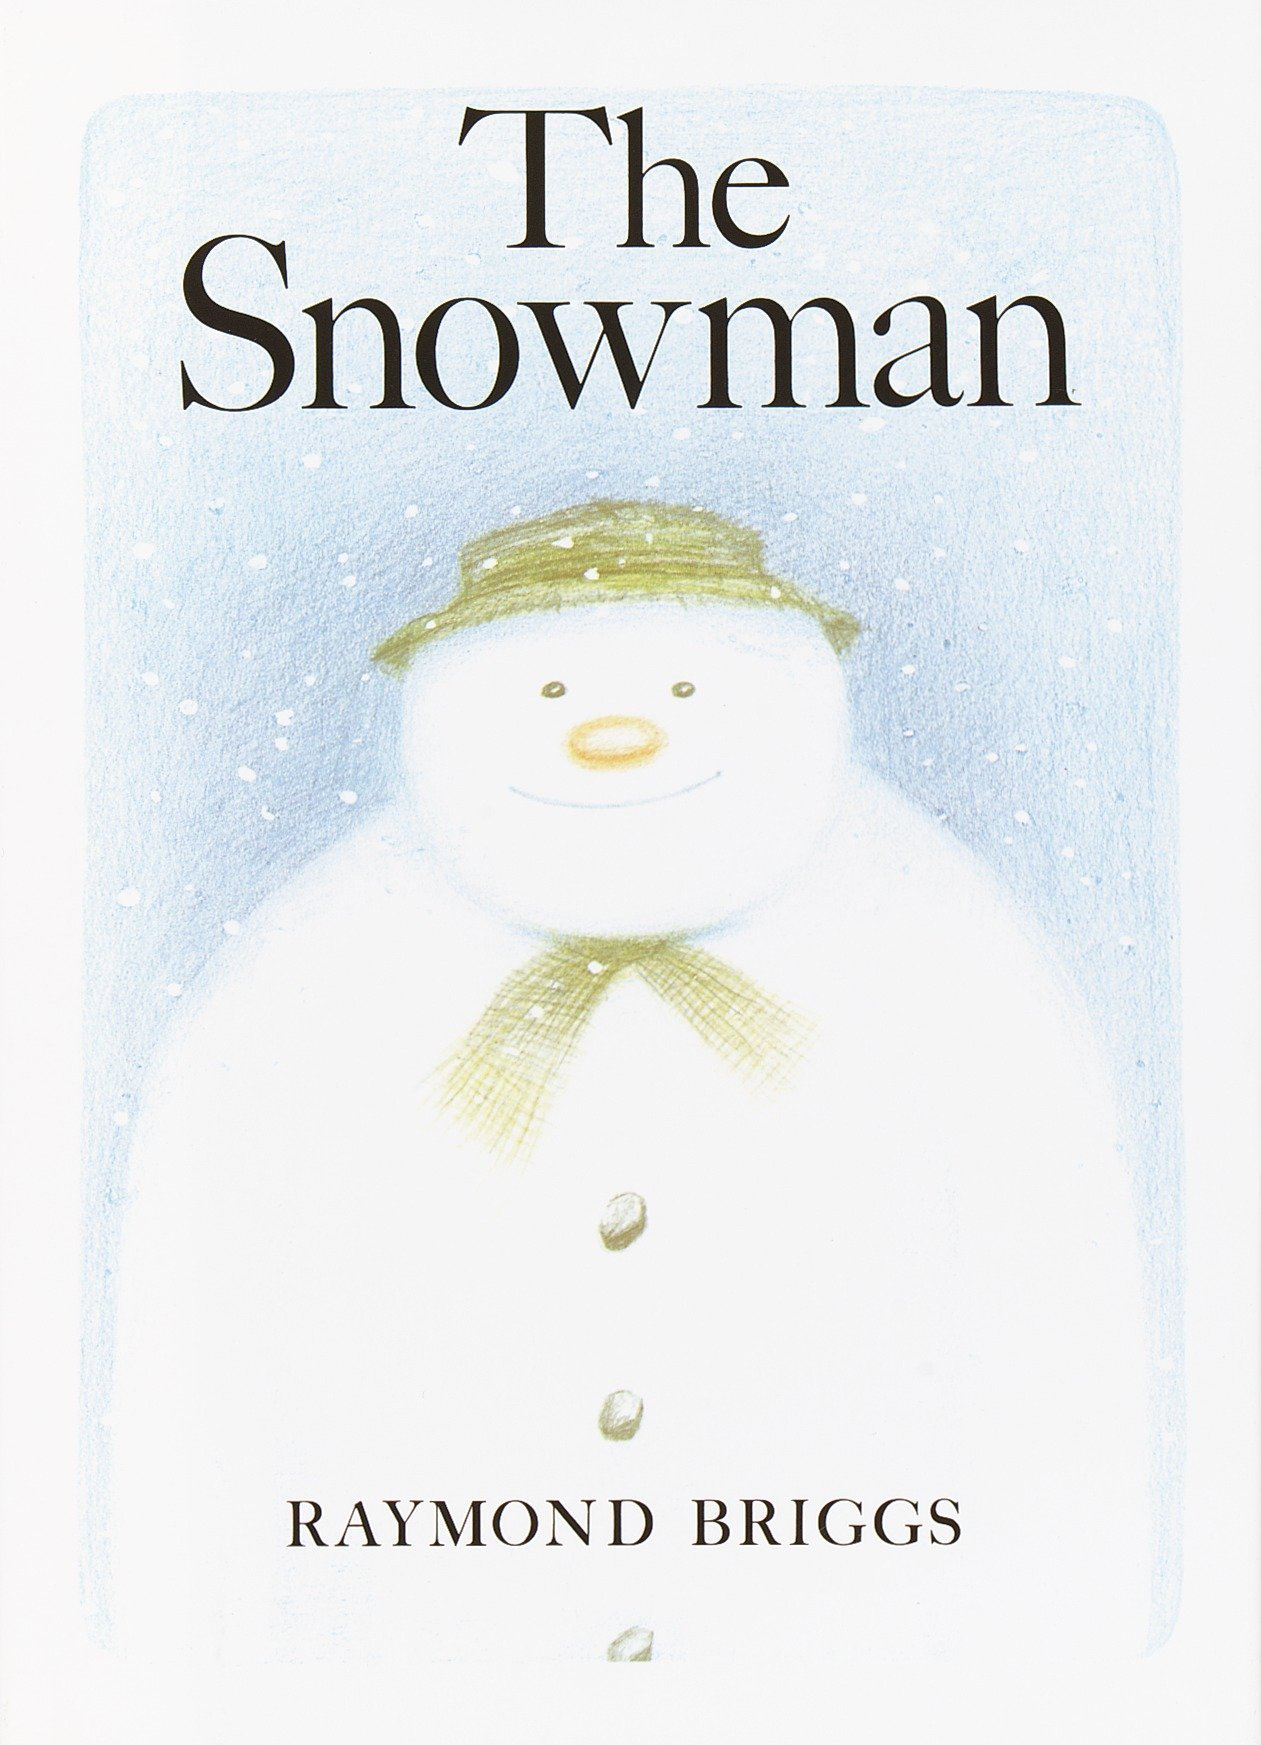 The Best Christmas Picture Books  - The Snowman.jpg